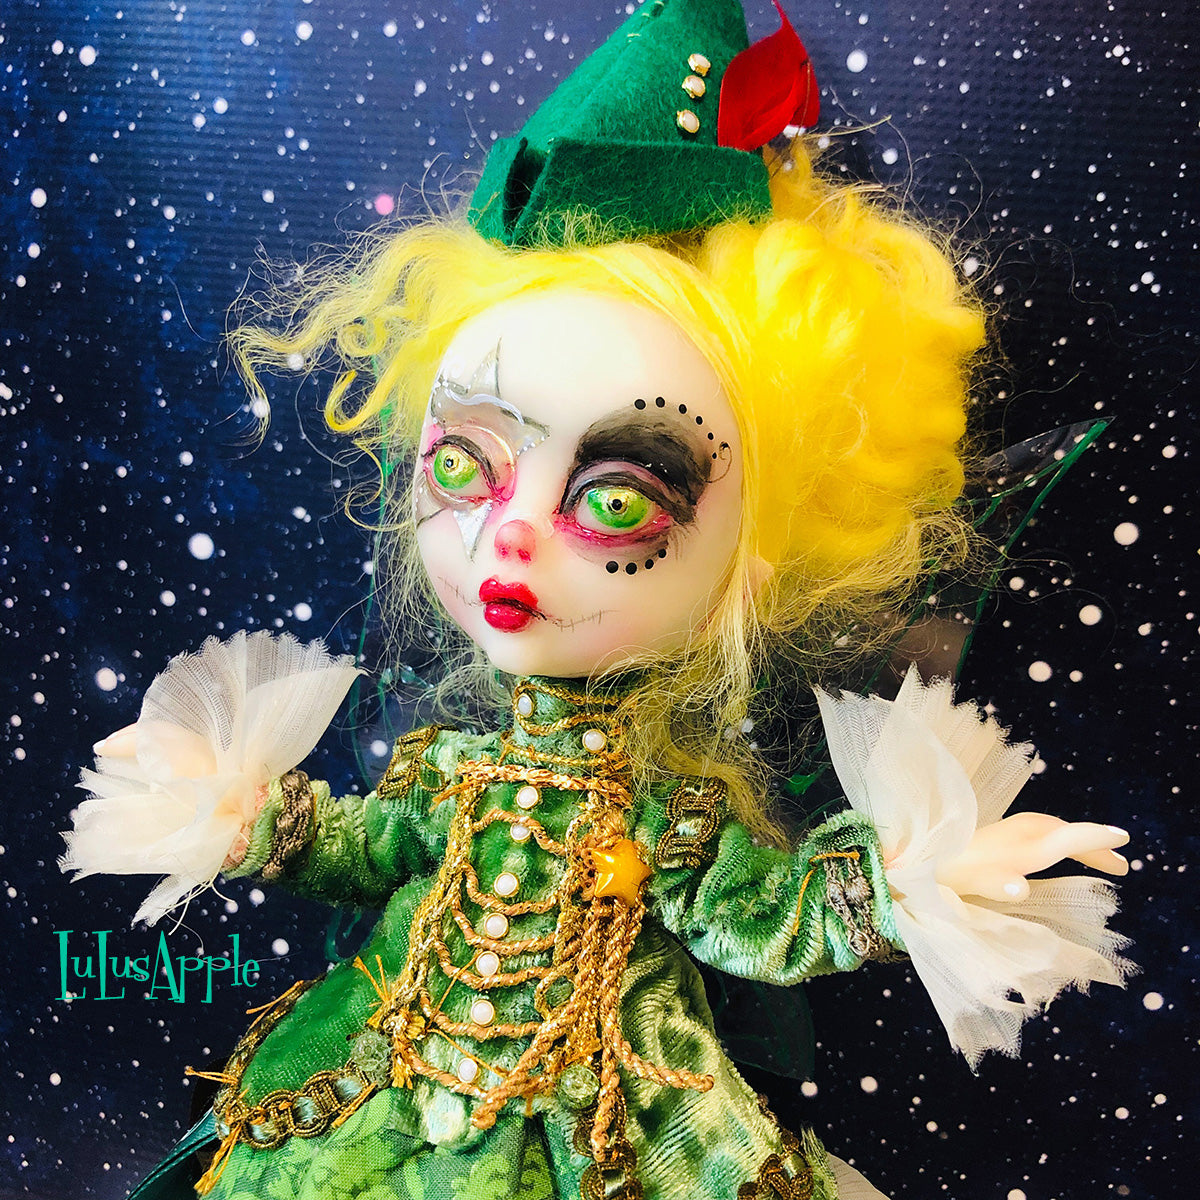 Tink NeverLand Military Mashup OOAK LuLusApple Art Doll